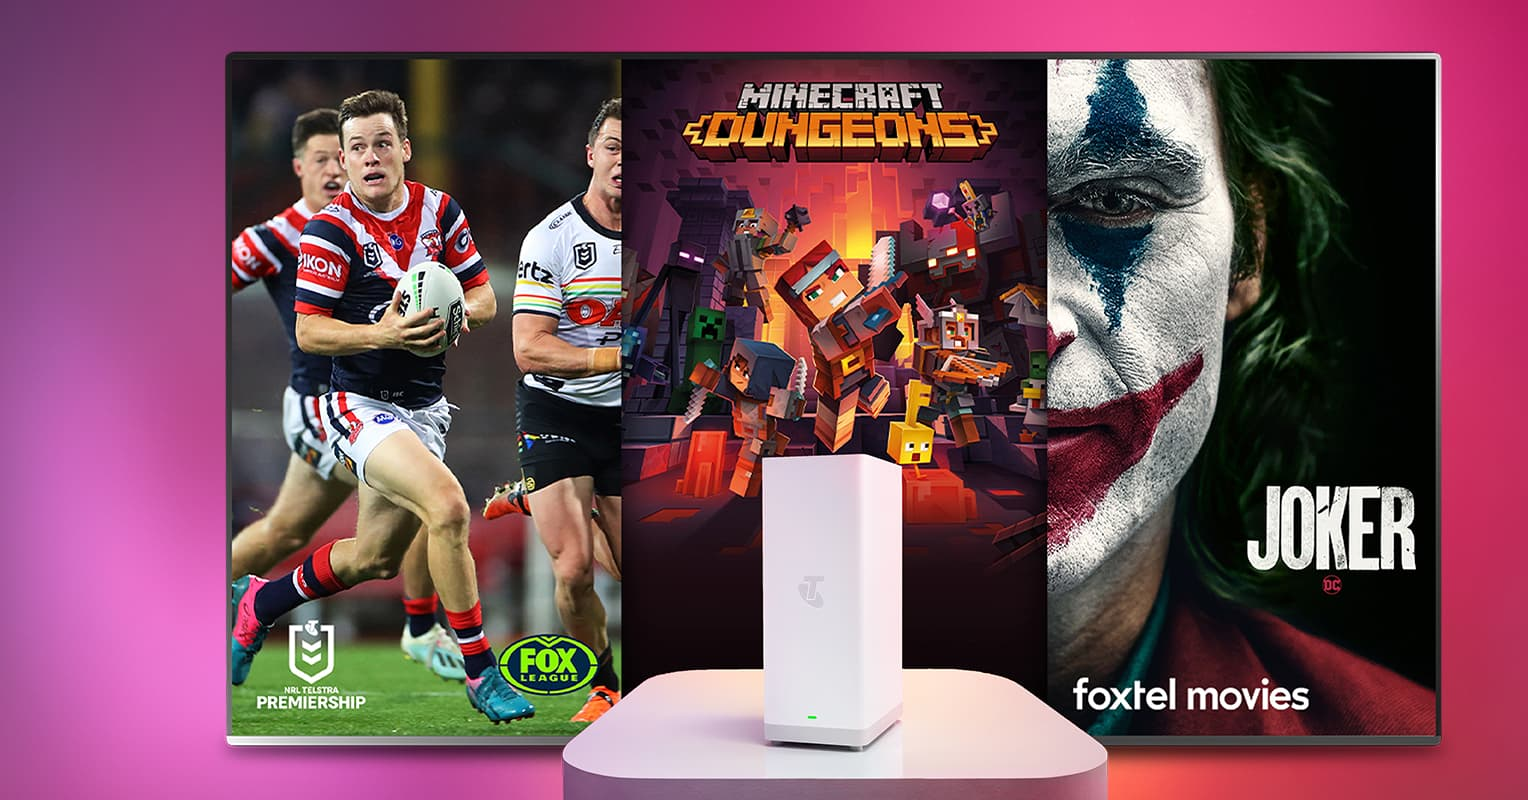 Telstra entertainment options include NRL on Kayo, Minecraft Dungeons on Xbox, and Joker on Foxtel, plus a Telstra Smart Modem for new internet customers.